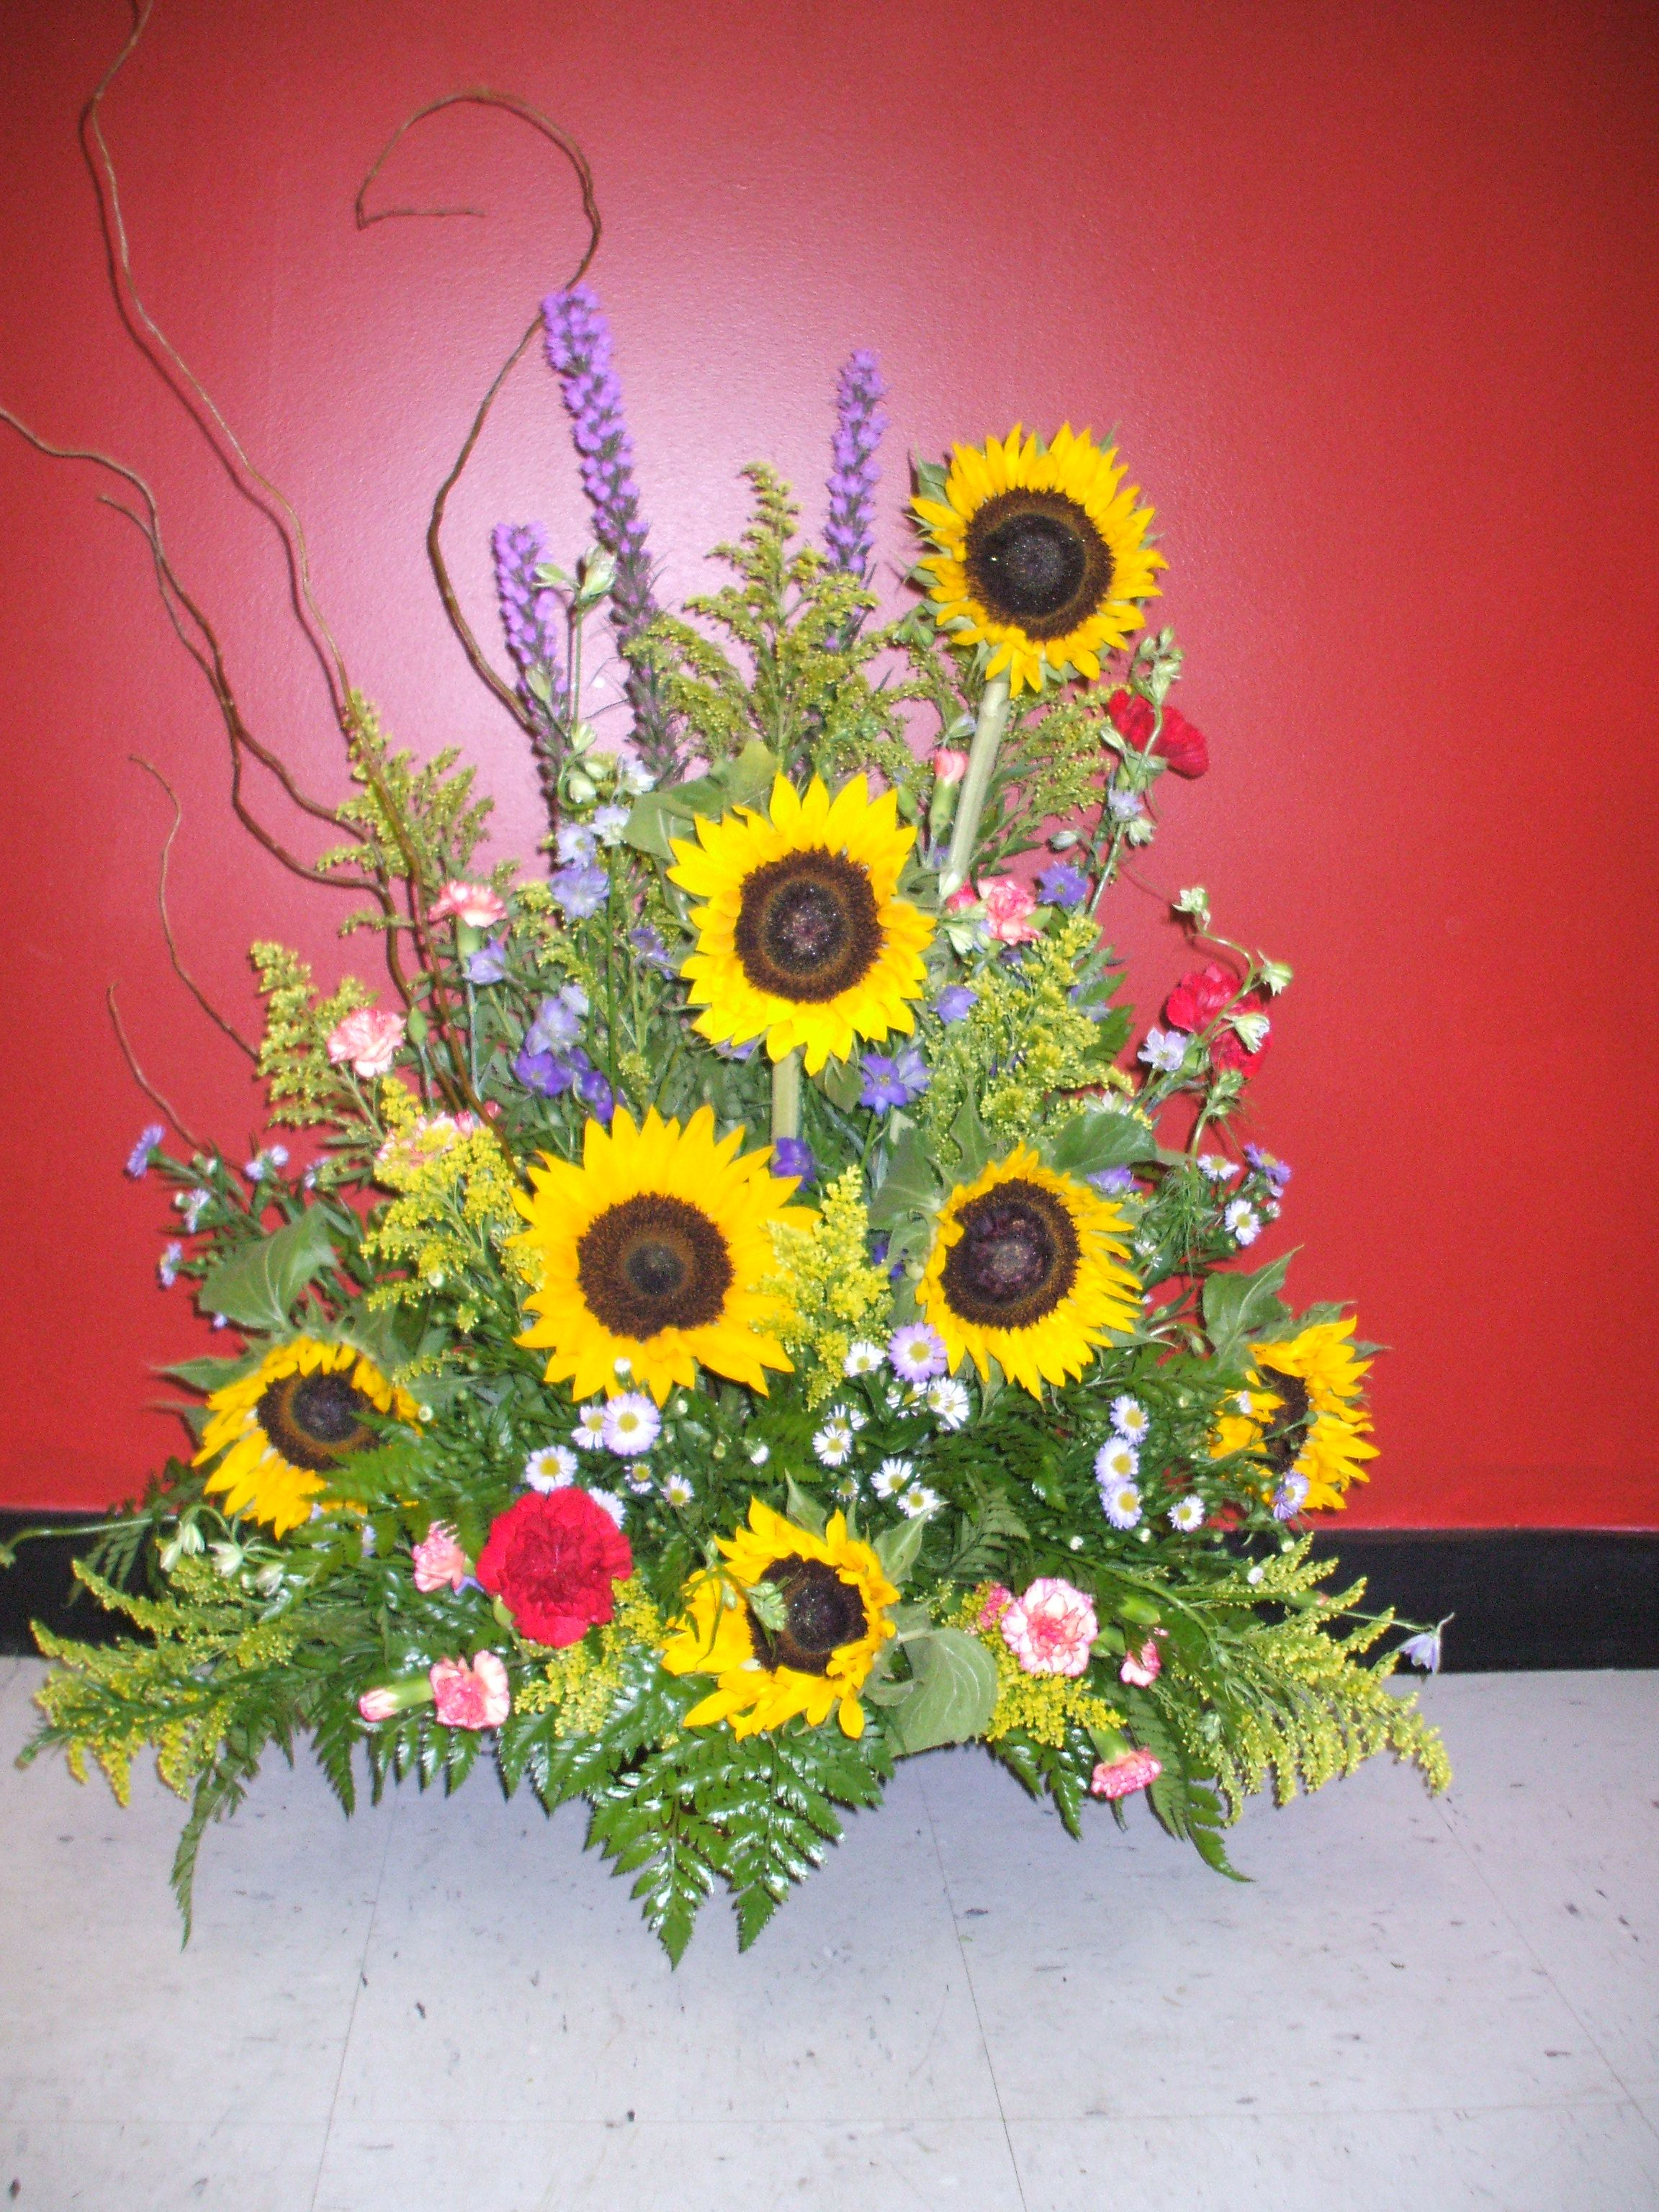 for the altar or church sunflowers are such a happy flower